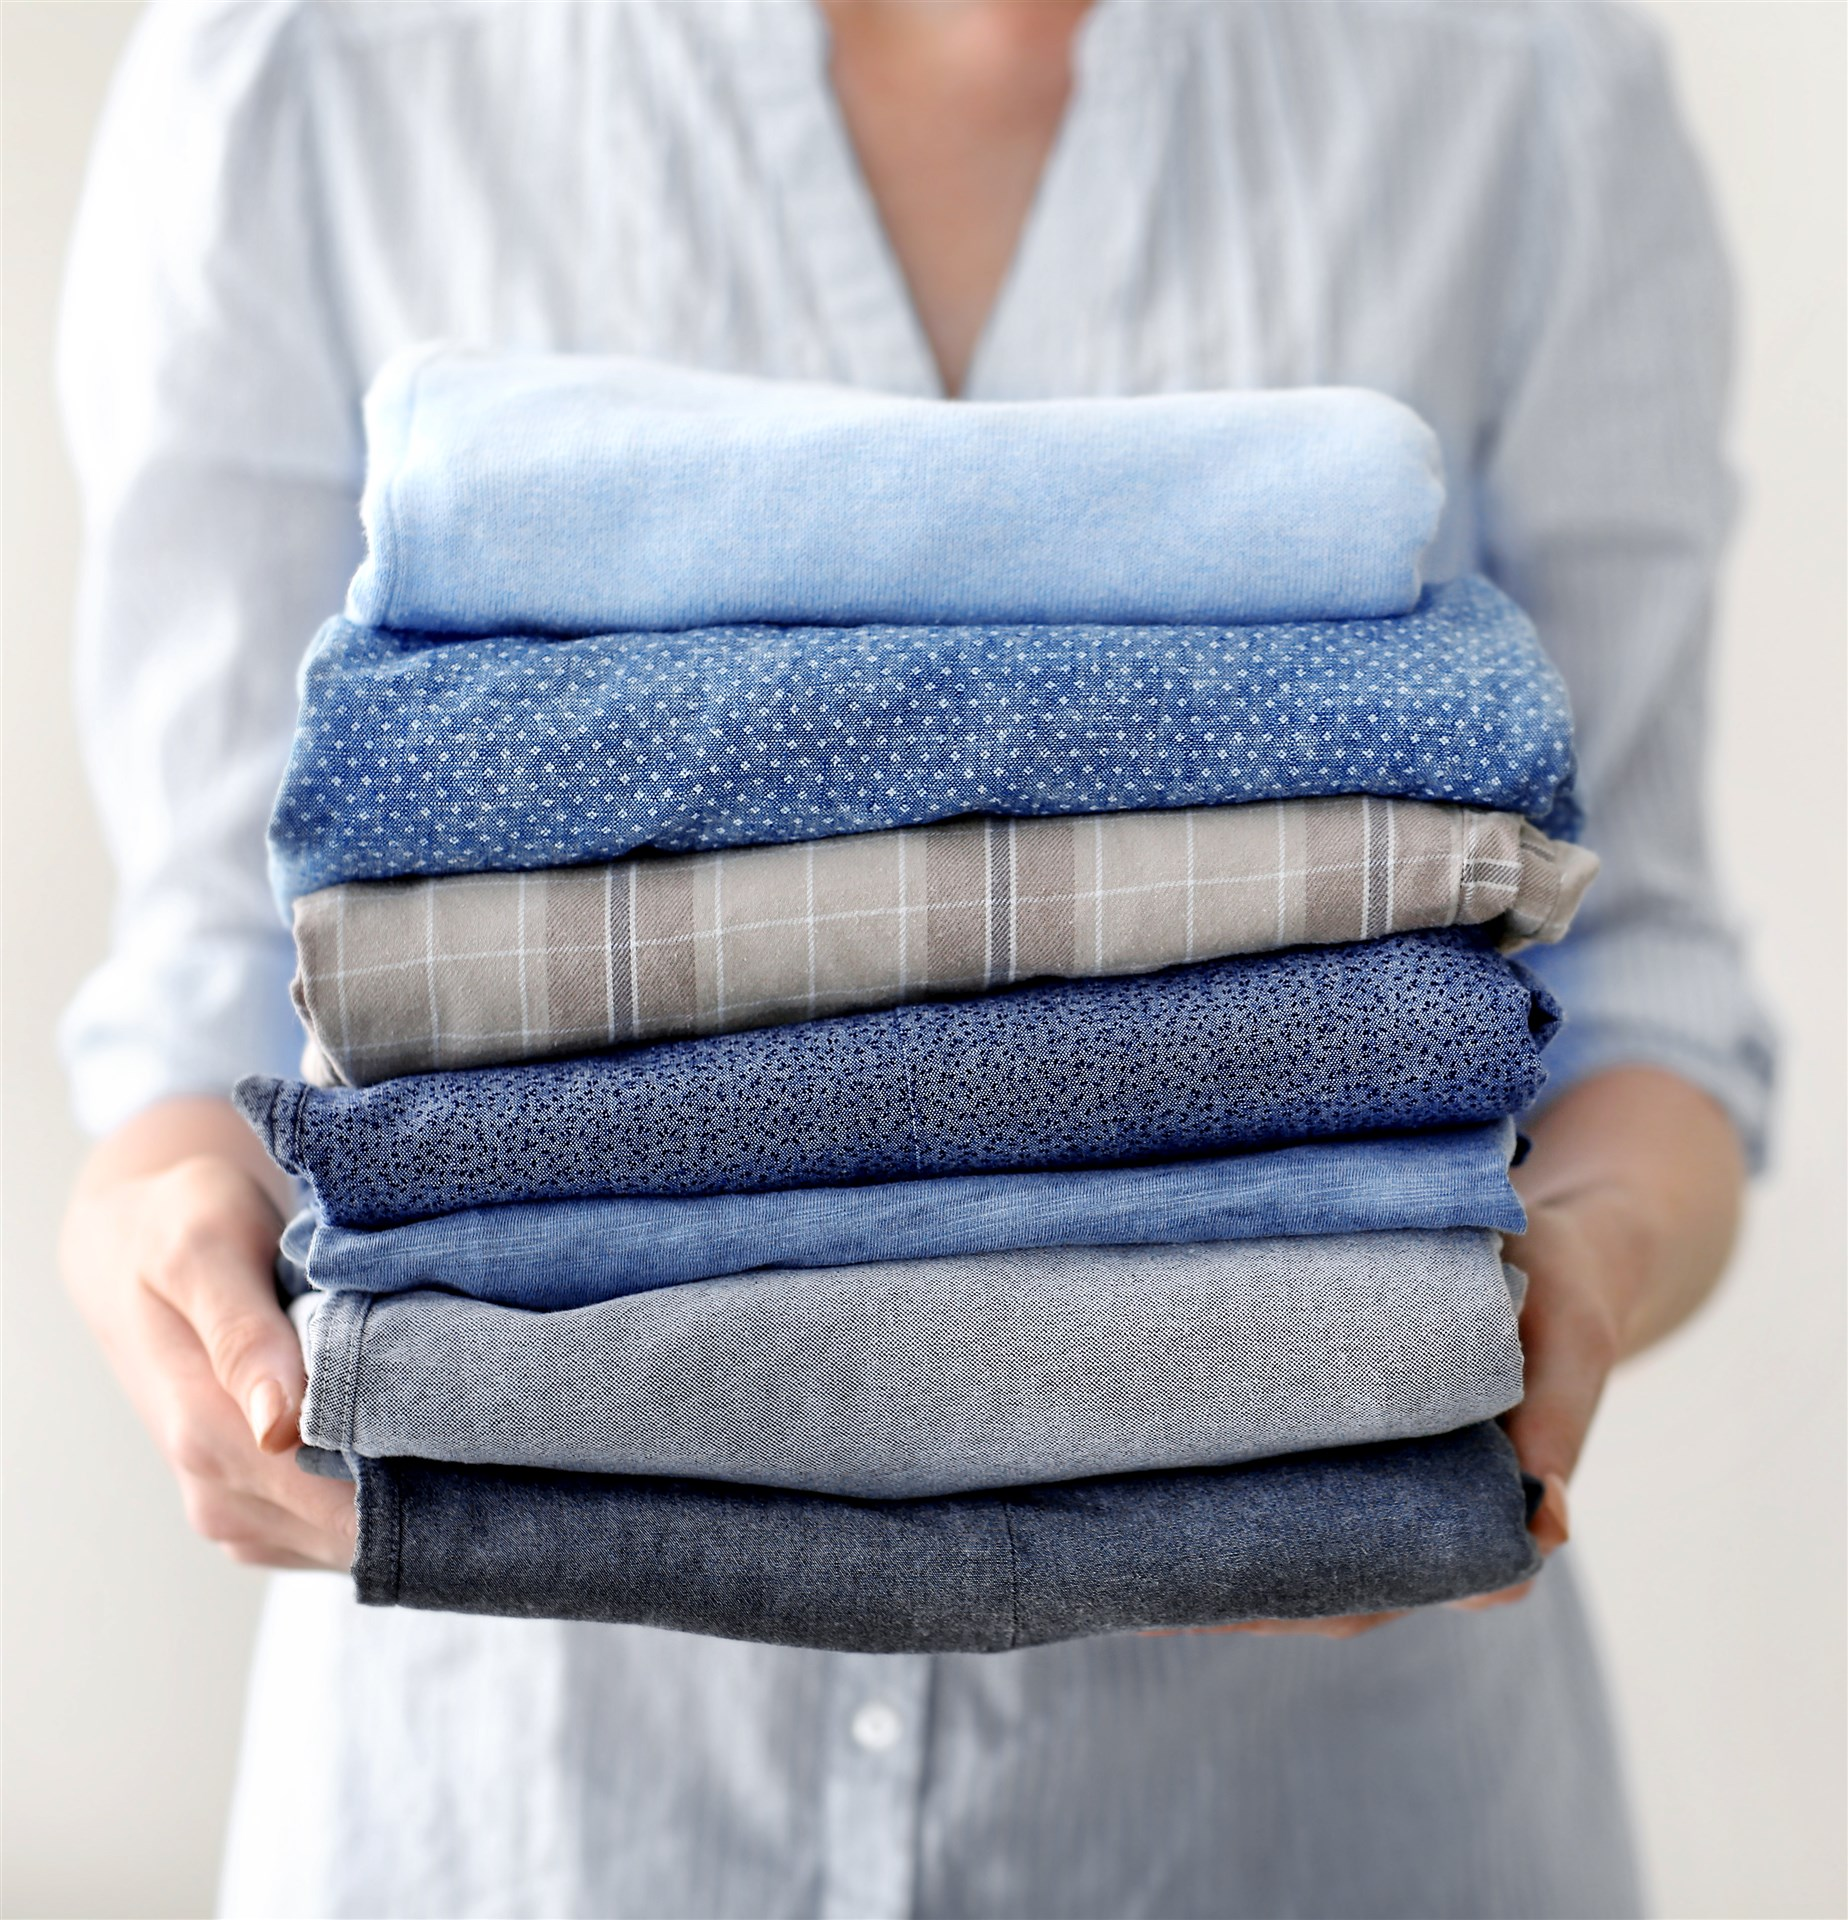 laundry, wash and fold